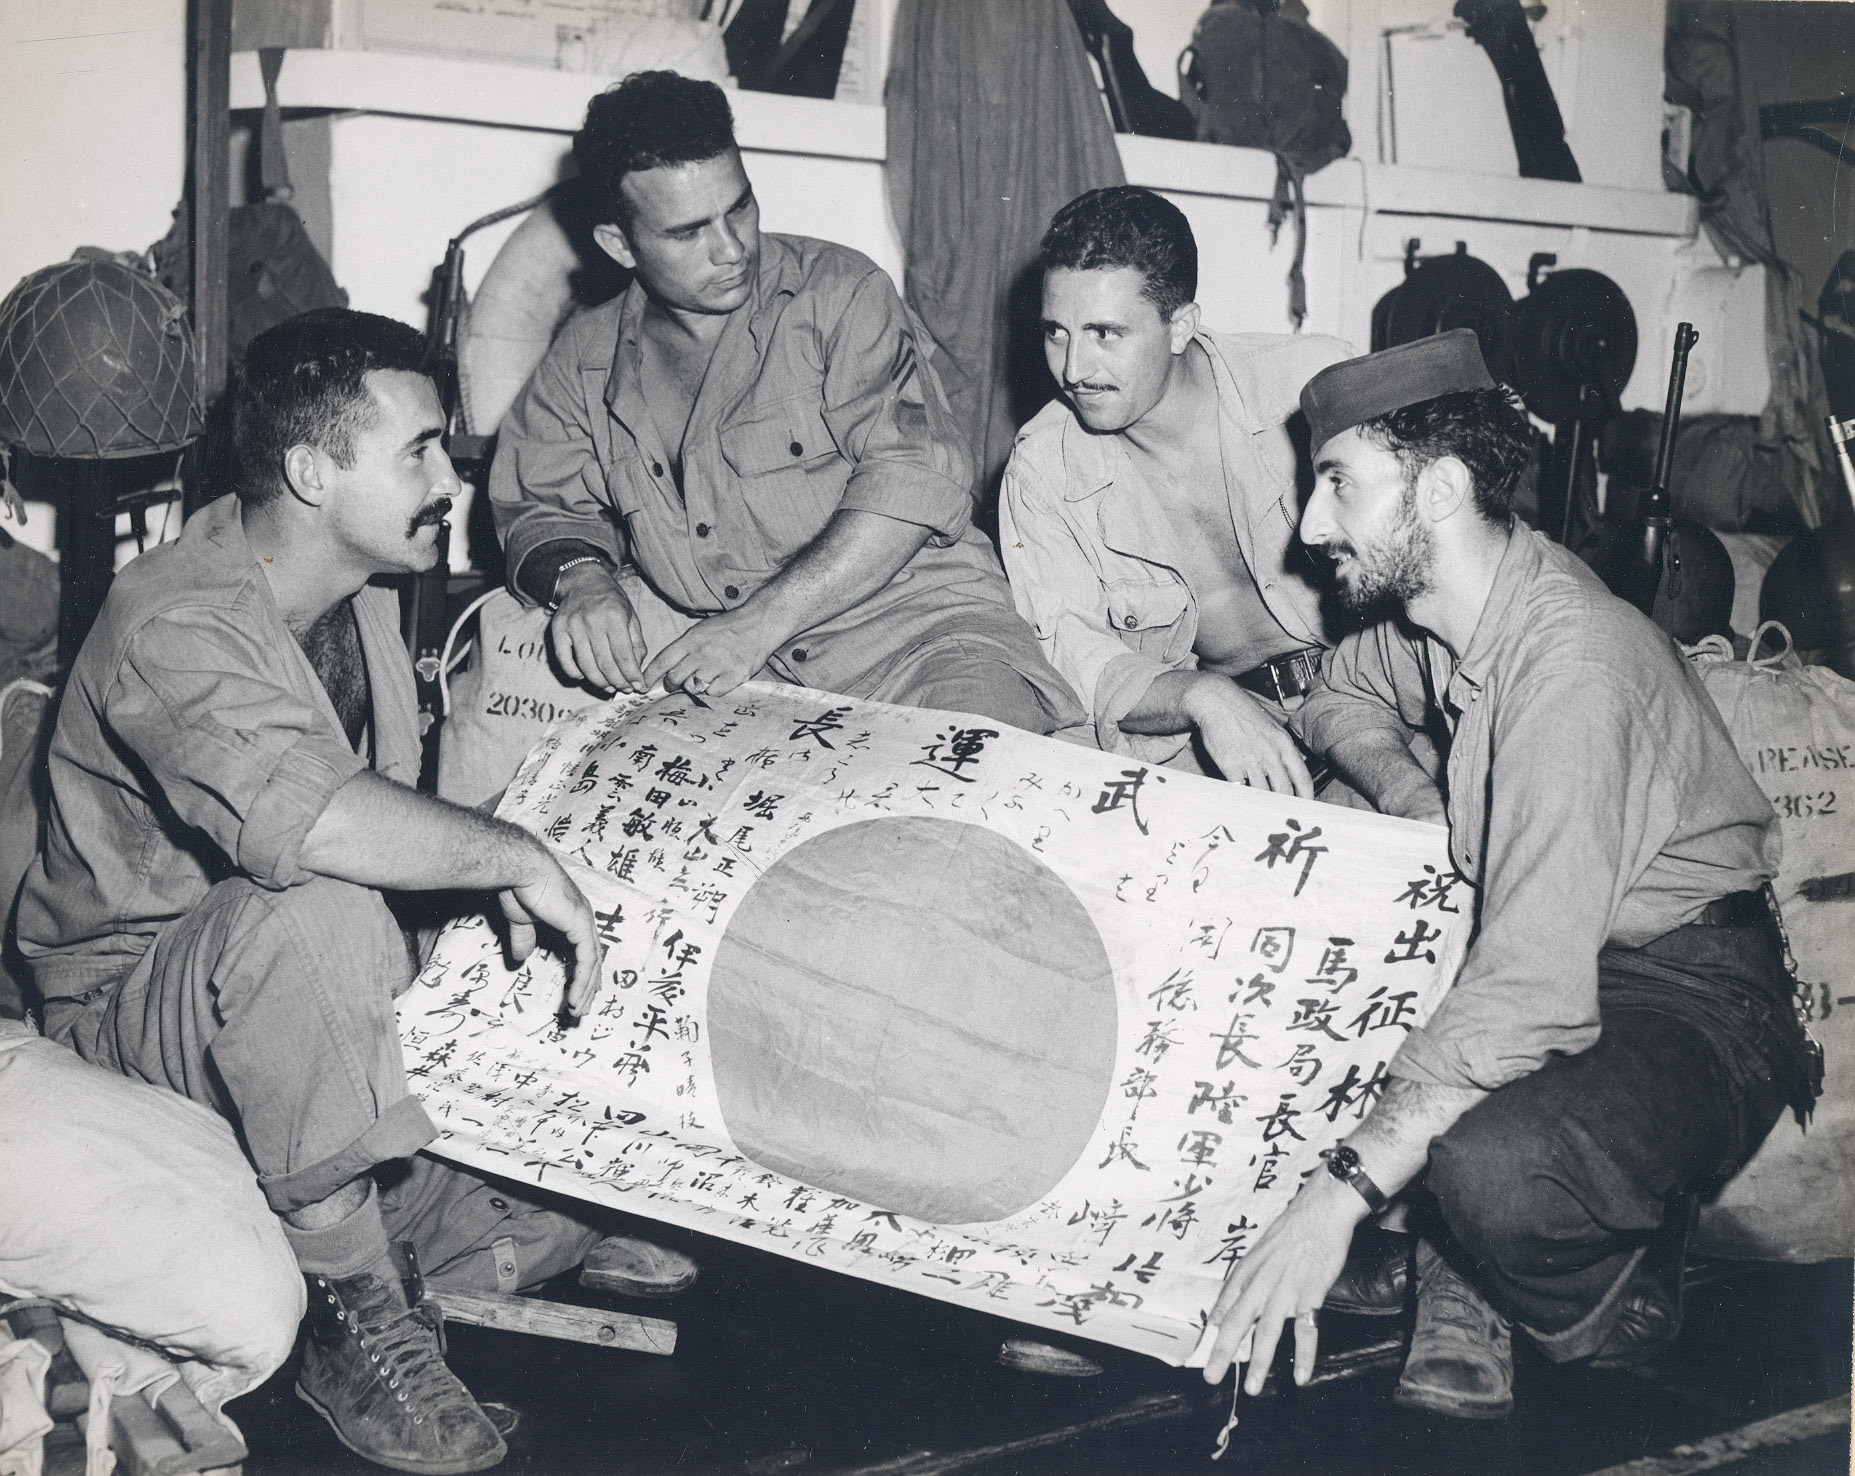 Marines show a sailor a captured Japanese flag while en route home to the States as part of Operation Magic Carpet. This image is part of a photograph album detailing the wartime service of the carrier Intrepid (CV 11) in the Pacific during World War II.